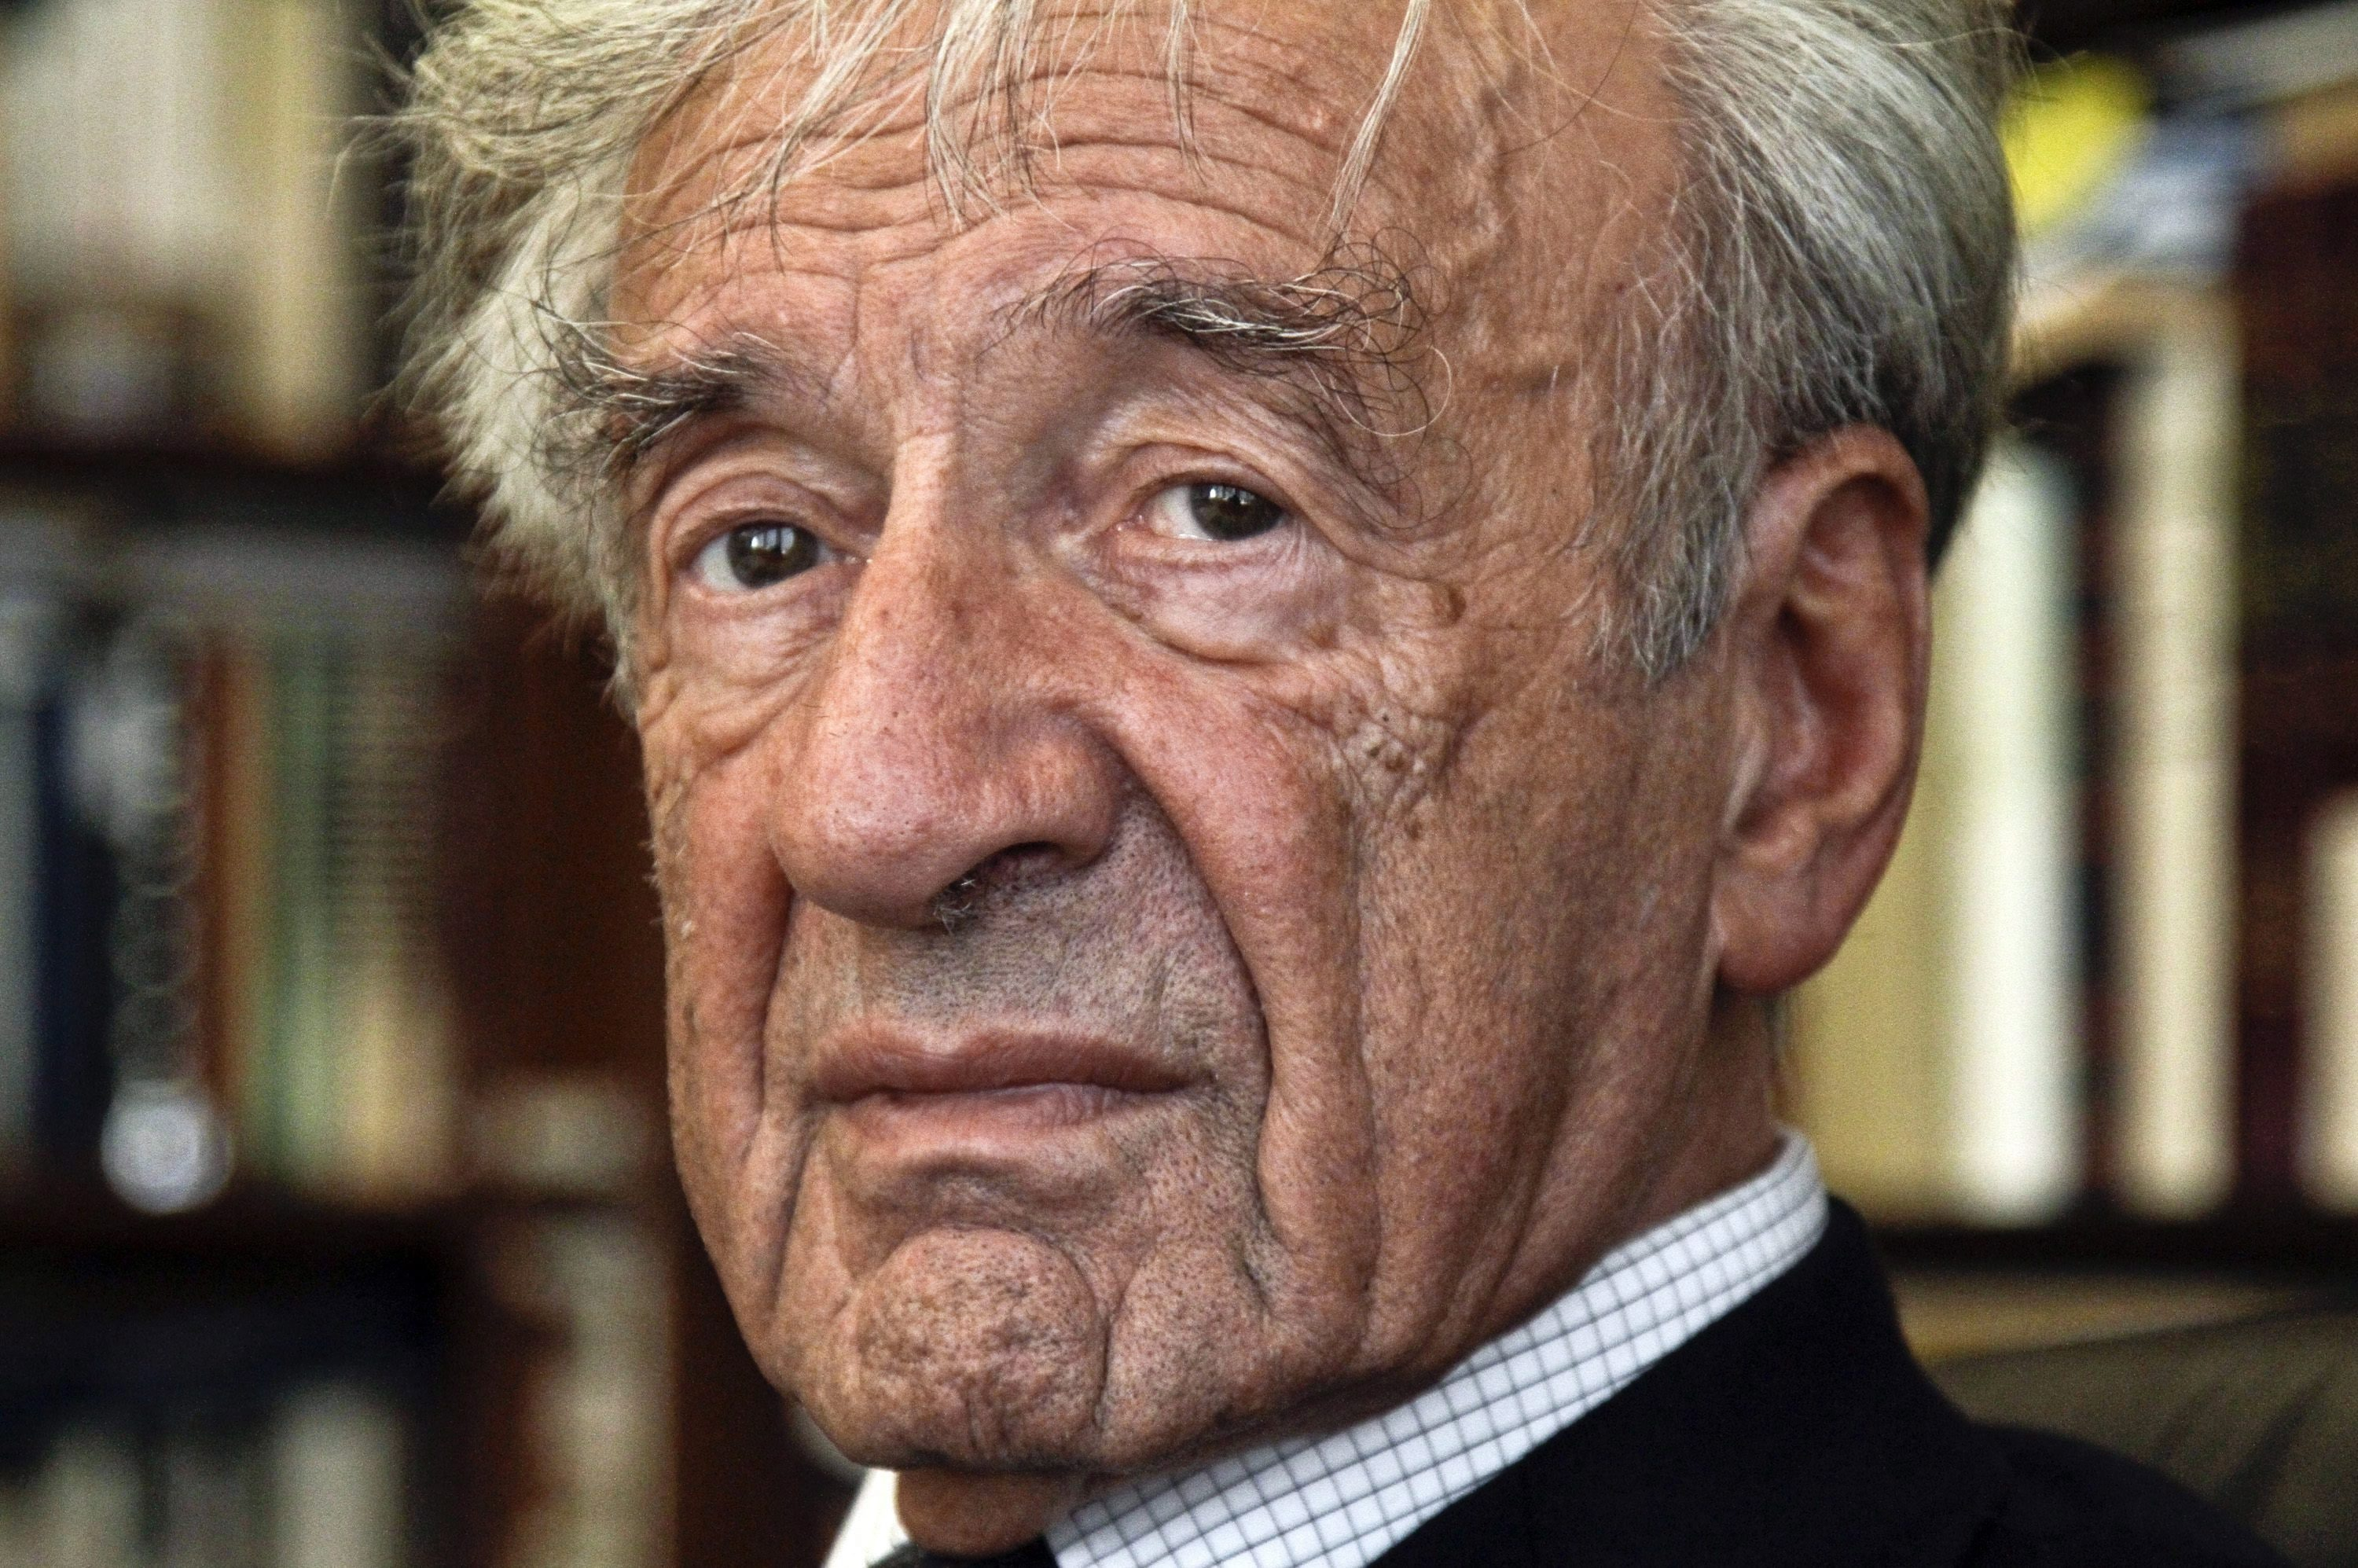 The late Elie Wiesel is seen in this 2012 photograph.